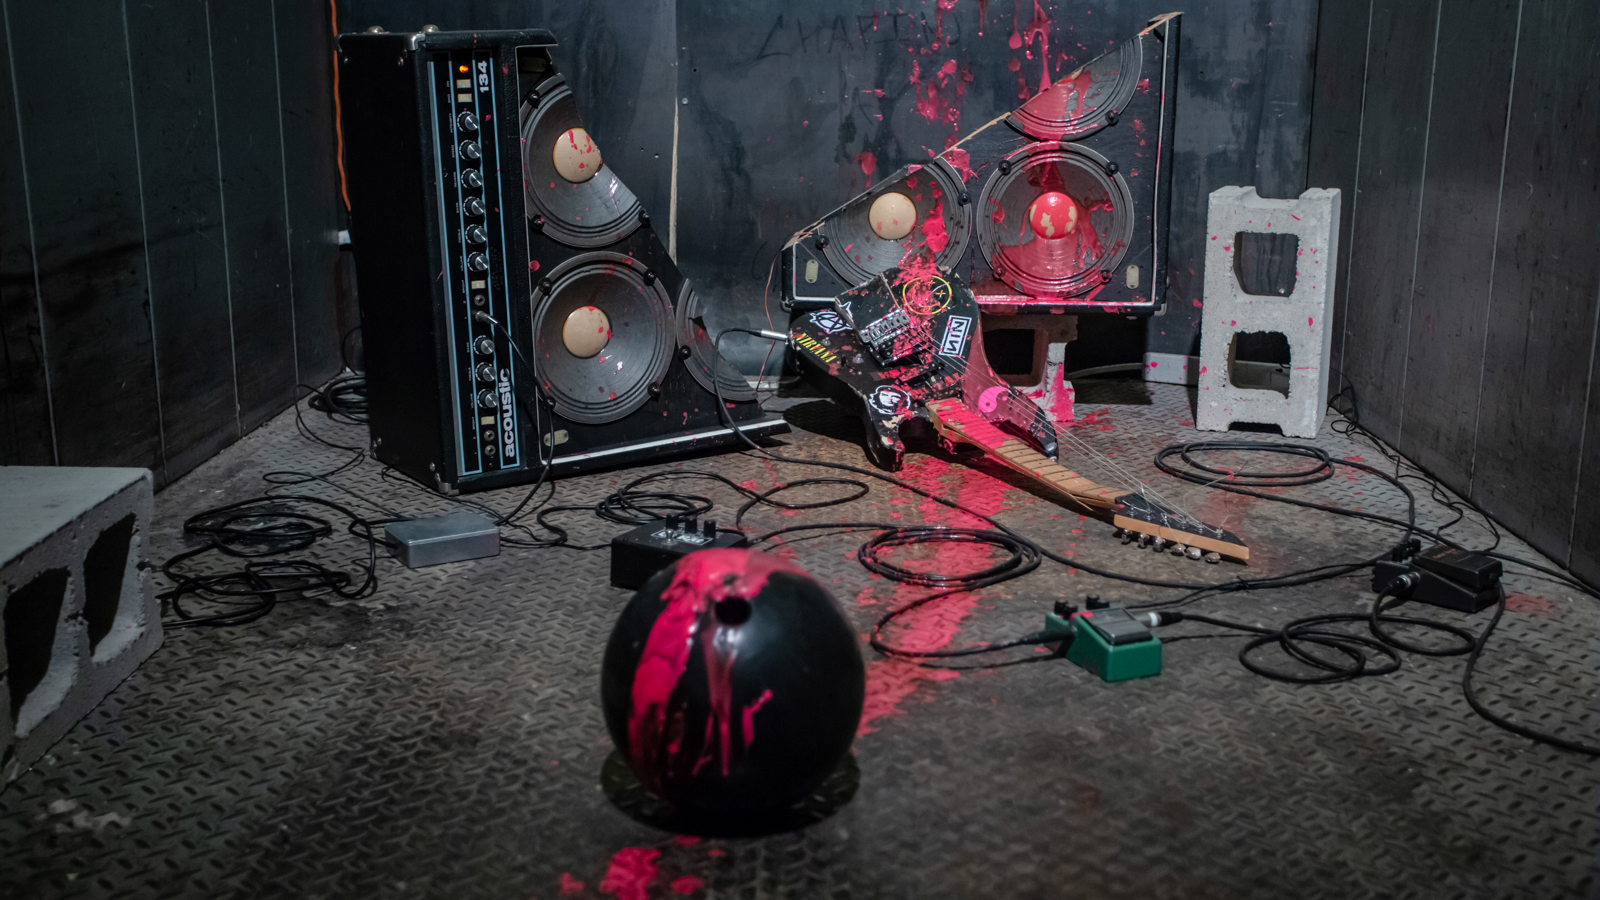 Persistent Teenage Gestures. Mixed-media installation. 2018. ~180cm x 220cm x 160cm. Electric guitar, amplifier, bowling ball, guitar pedals, electronics, pink paint. Photo by Emily Gan.